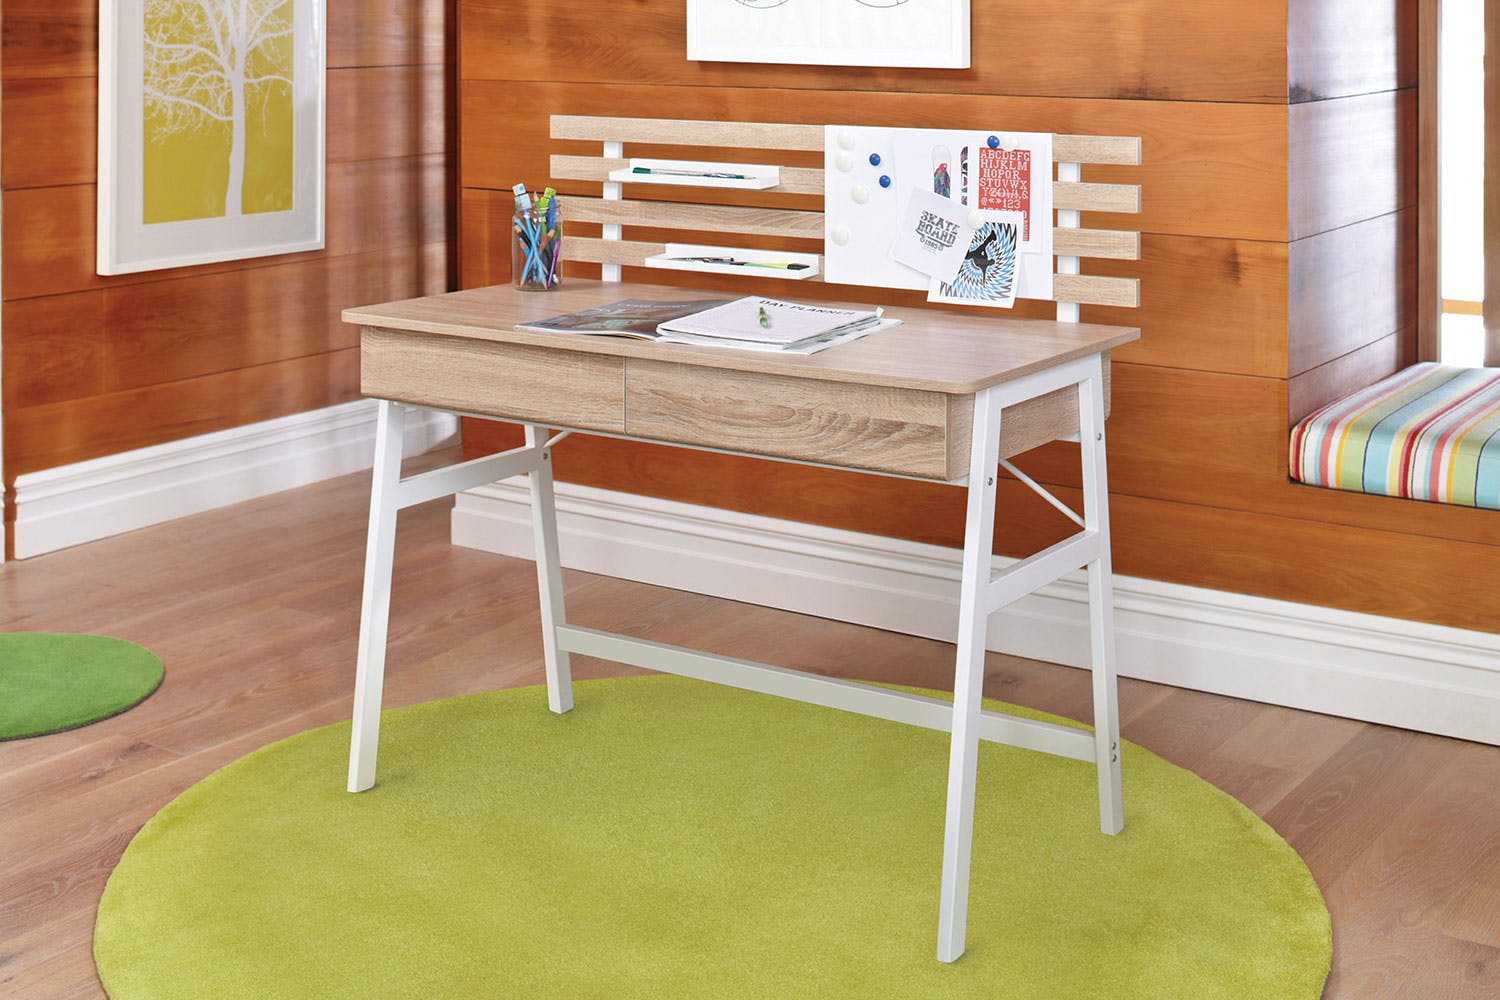 Image of Student Desk by TGV